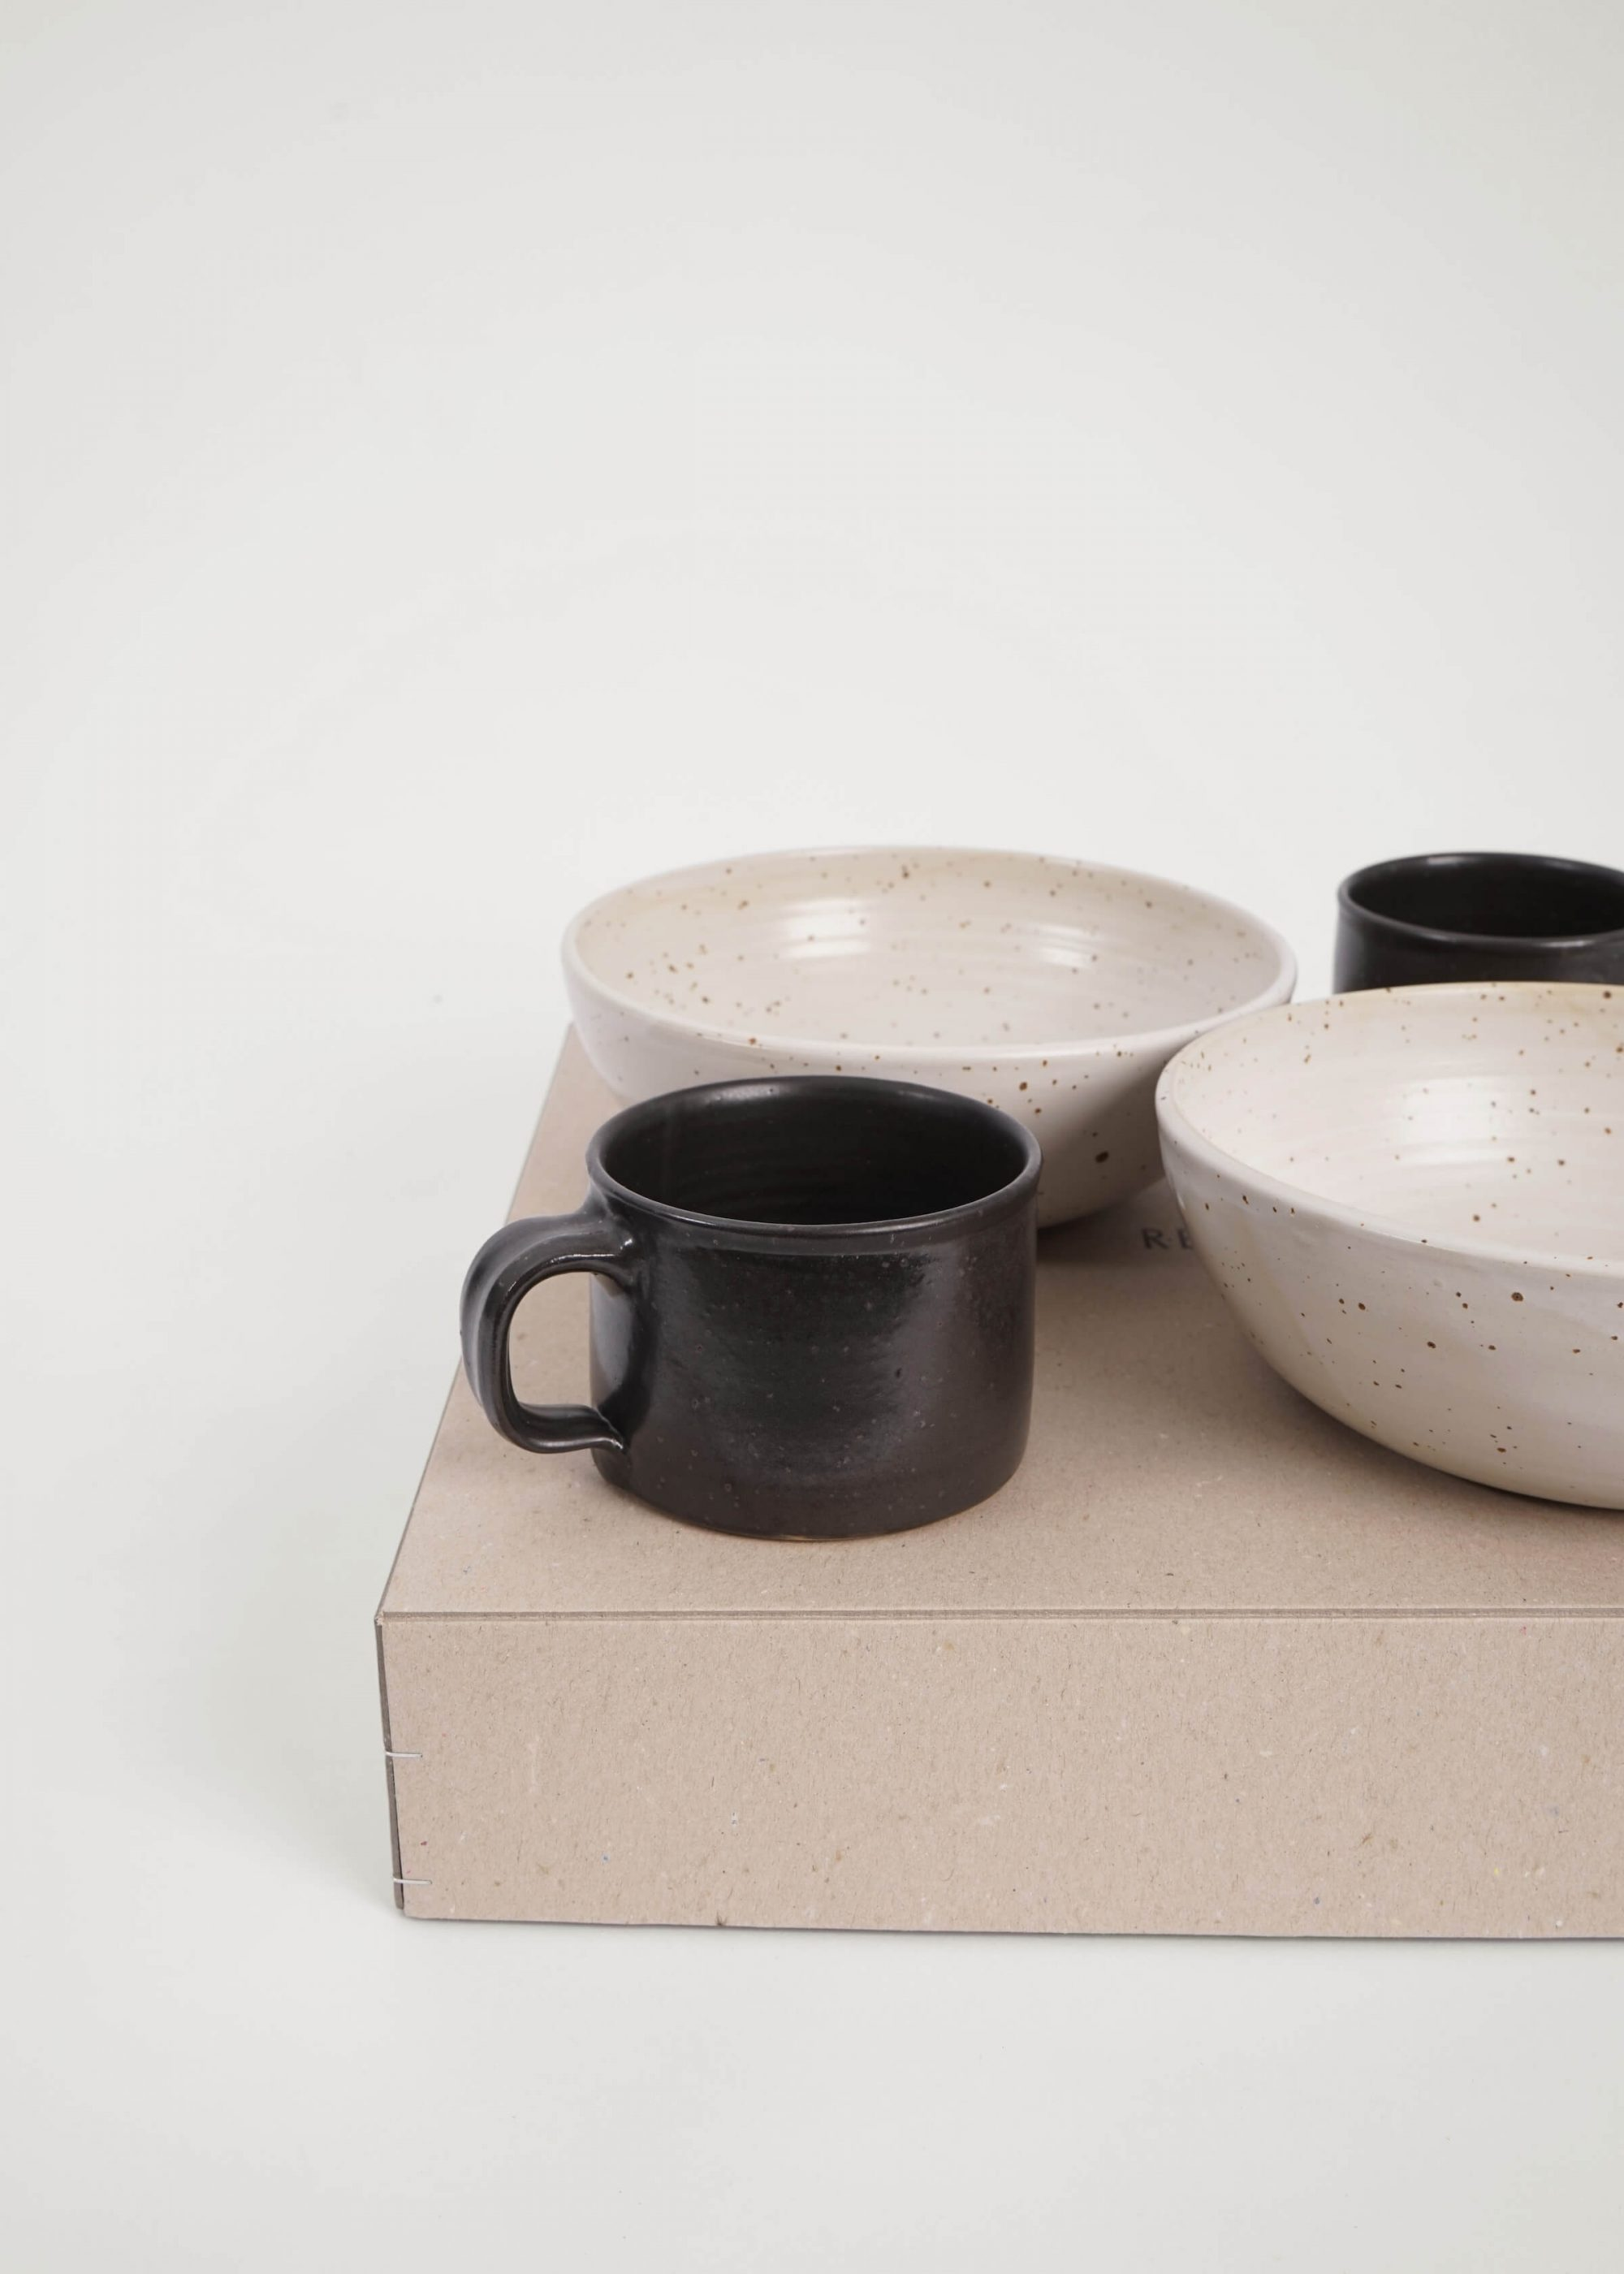 Product image for N° ICBE1 Ceramic Gift Box